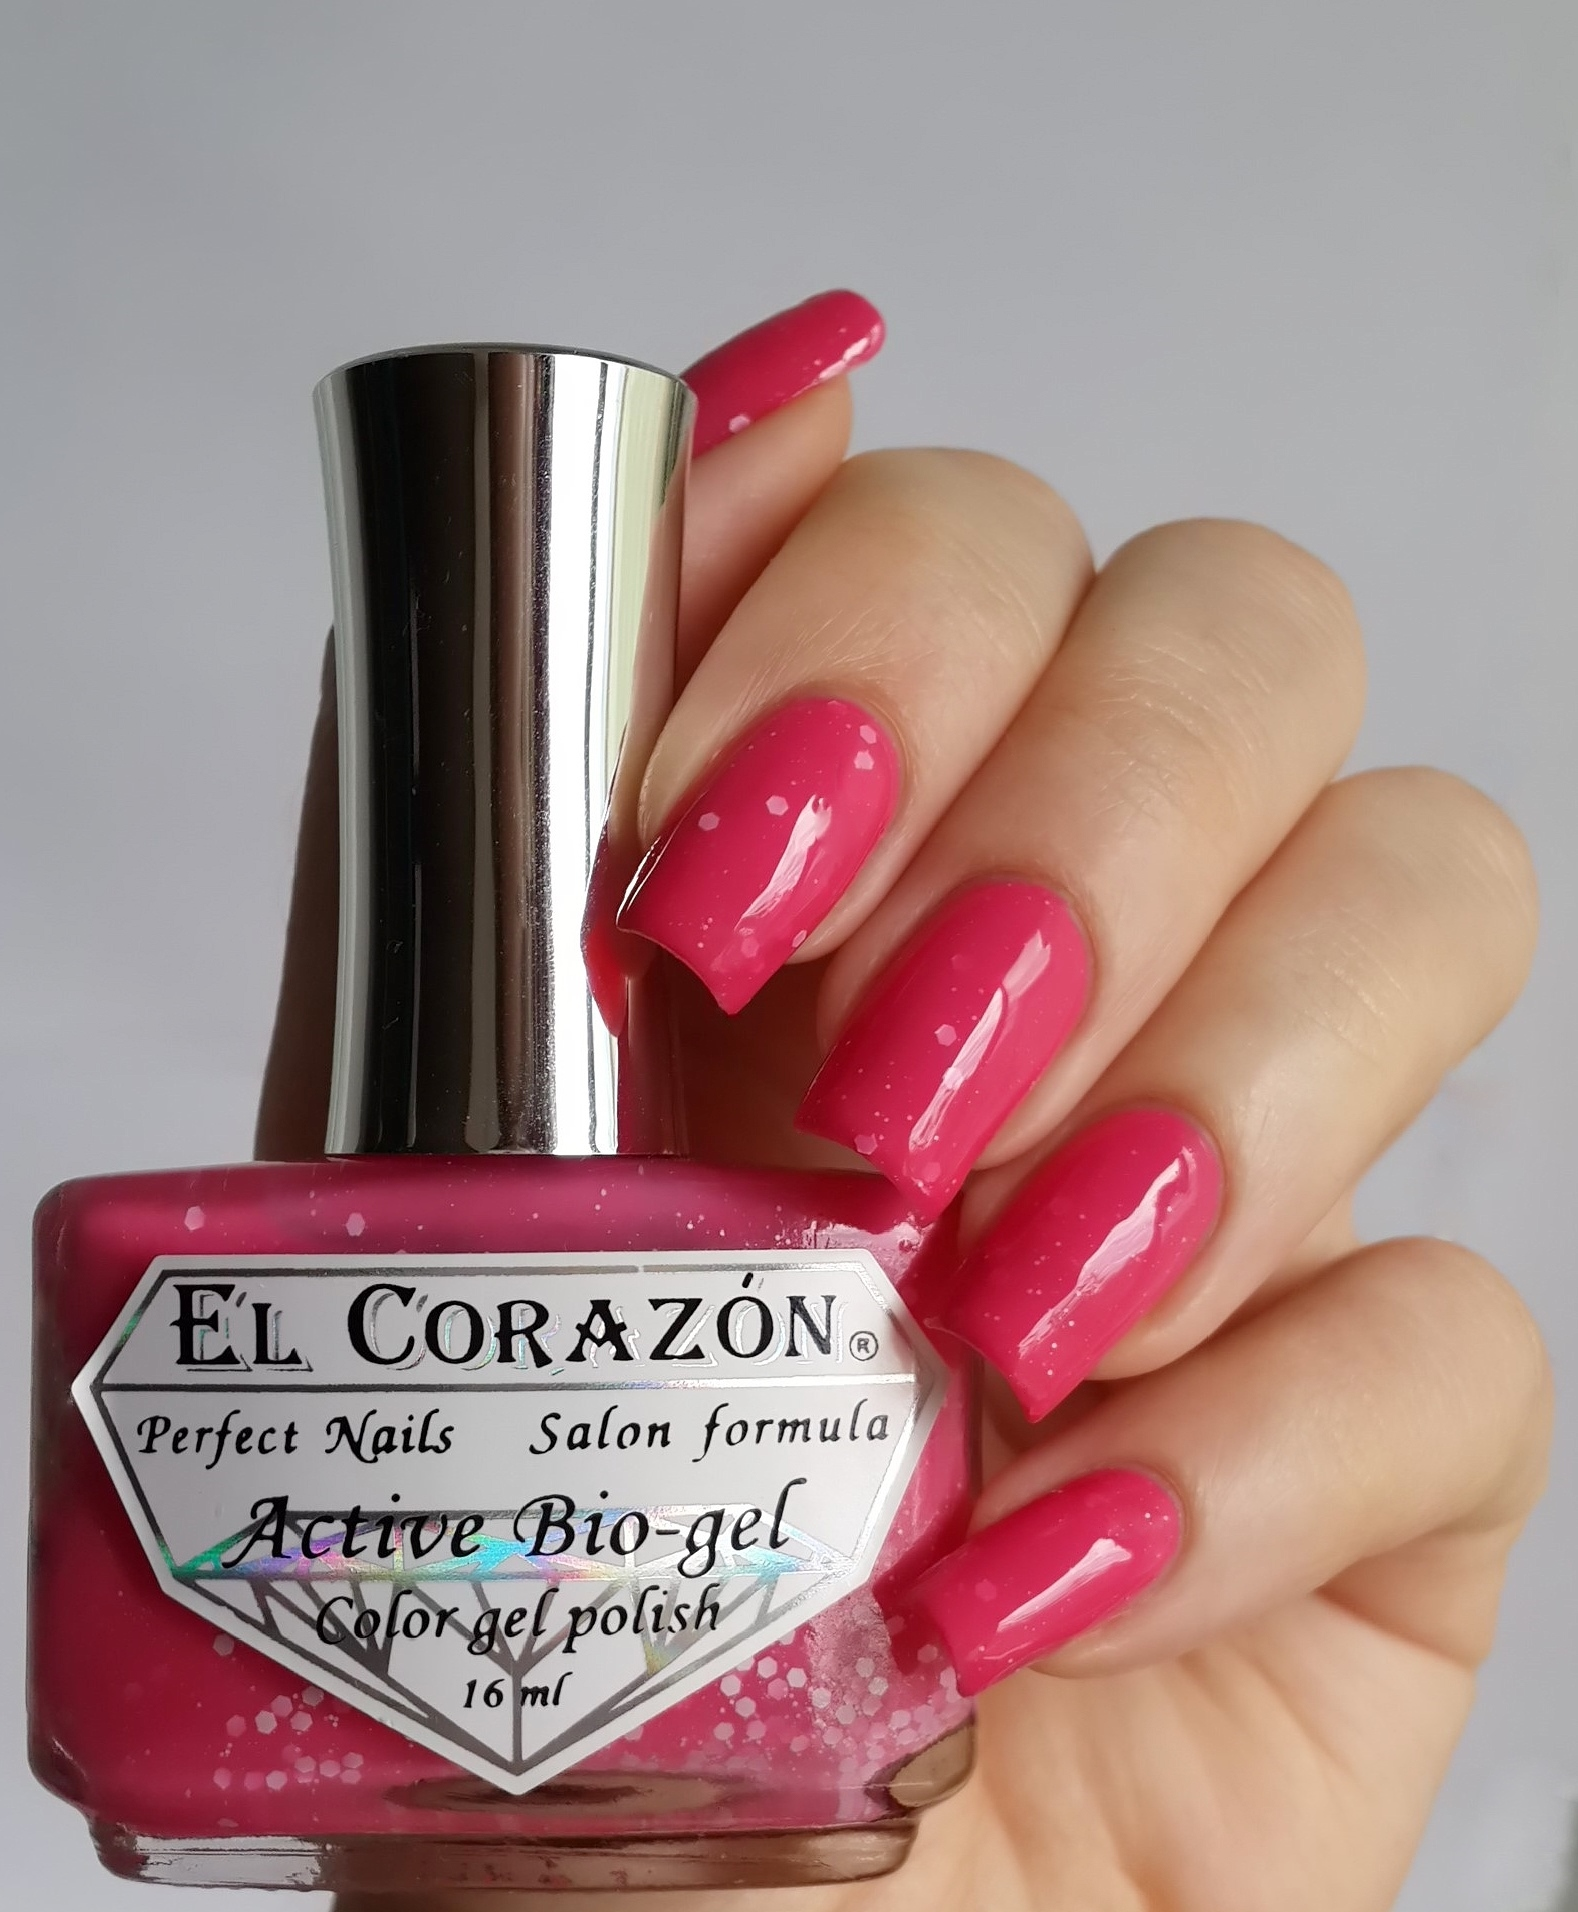 EL Corazon Active Bio-gel Color gel polish Fashion girl on a tryst №423/210